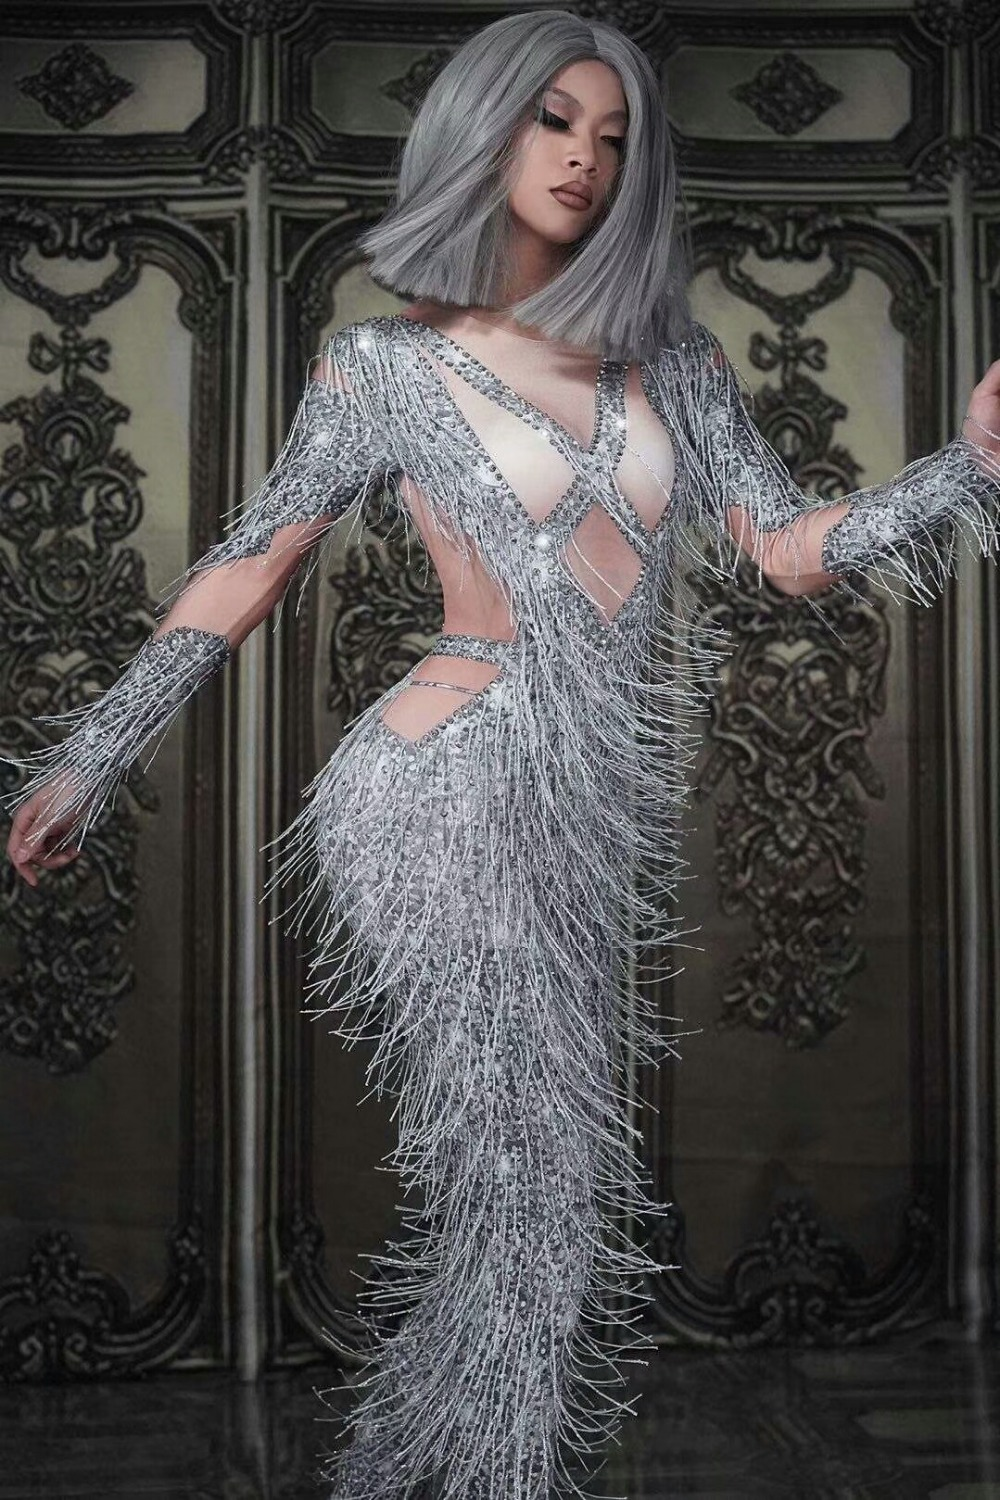 Female Singer Stage Costume Women Jumpsuits GrayTassel Dance Outfit Jazz DJ DS Show Wear Performances Sexy Bodysuits Clothes New